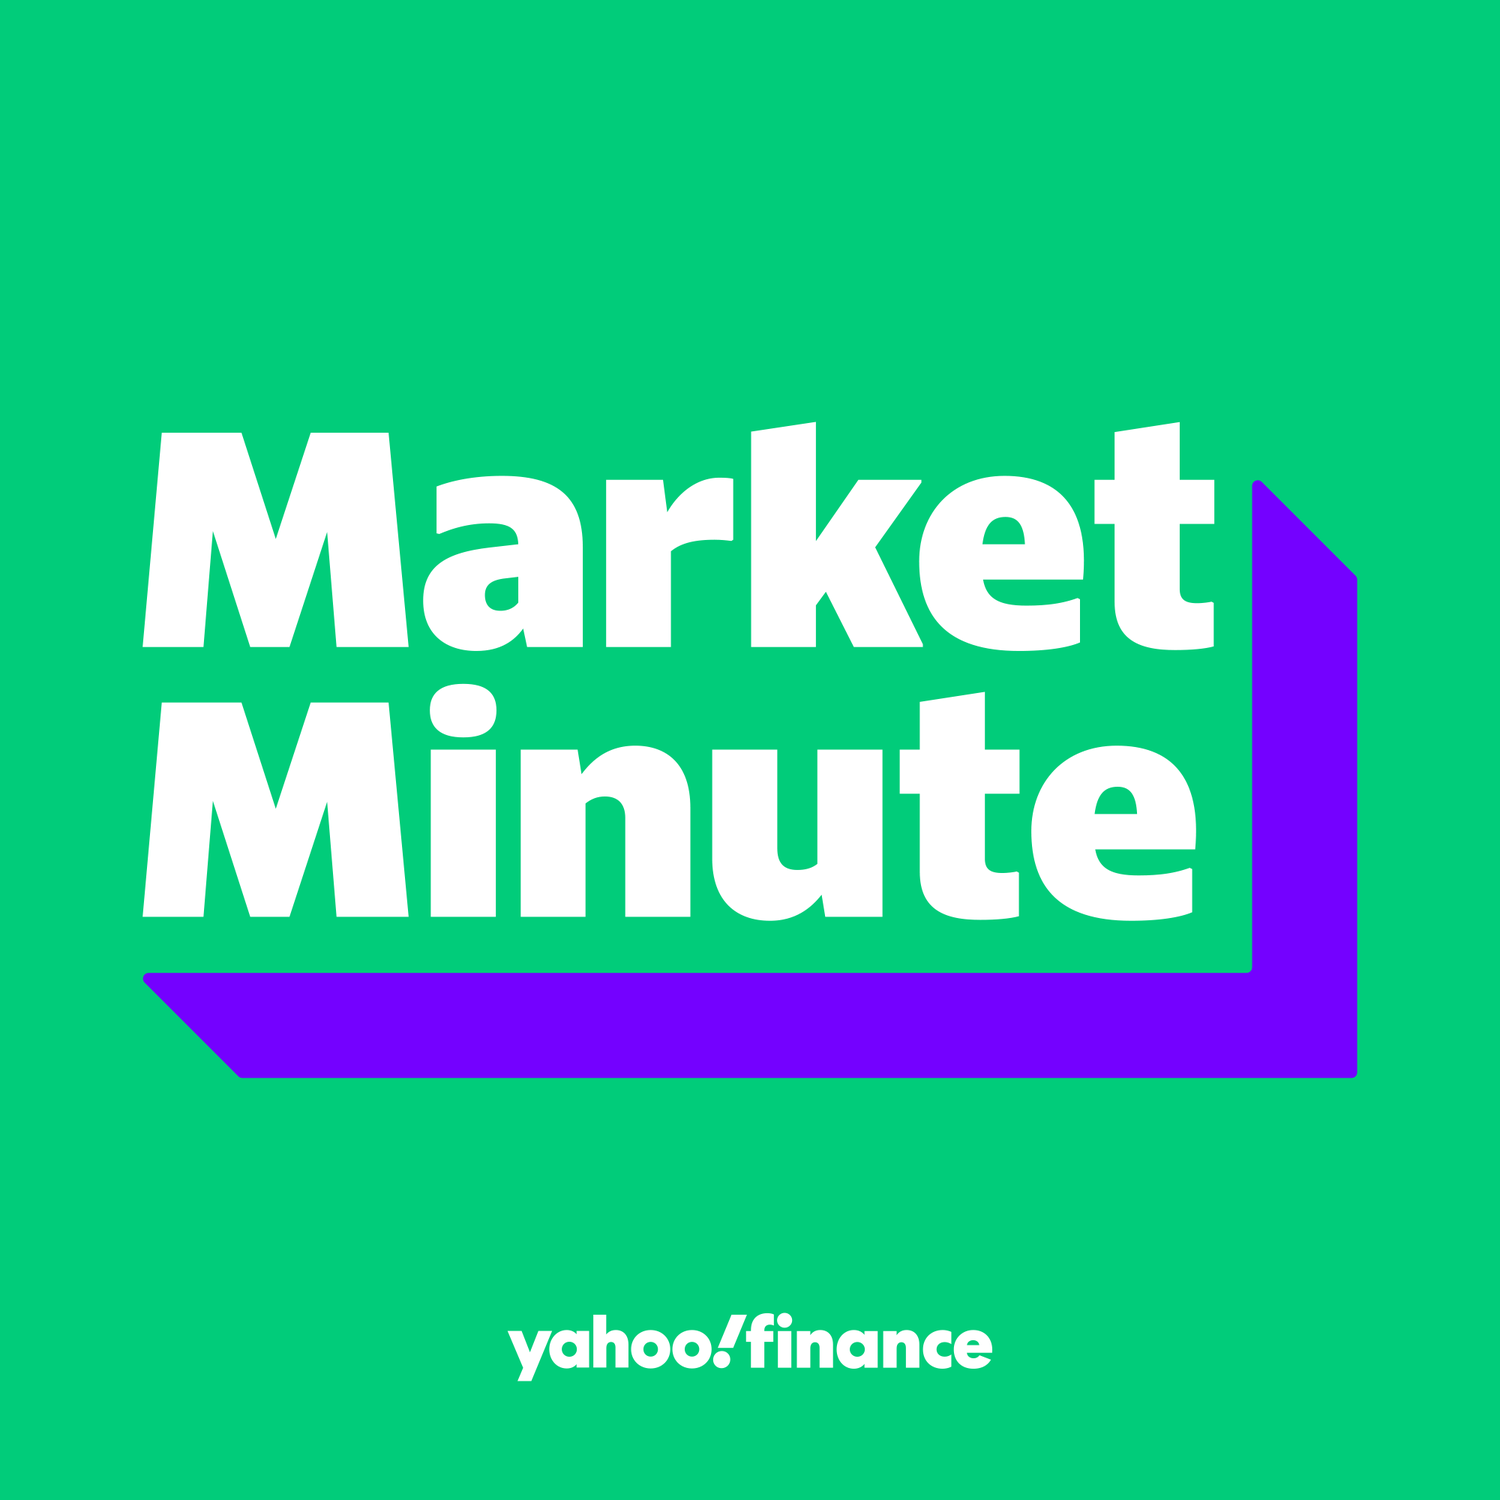 4 PM market minute